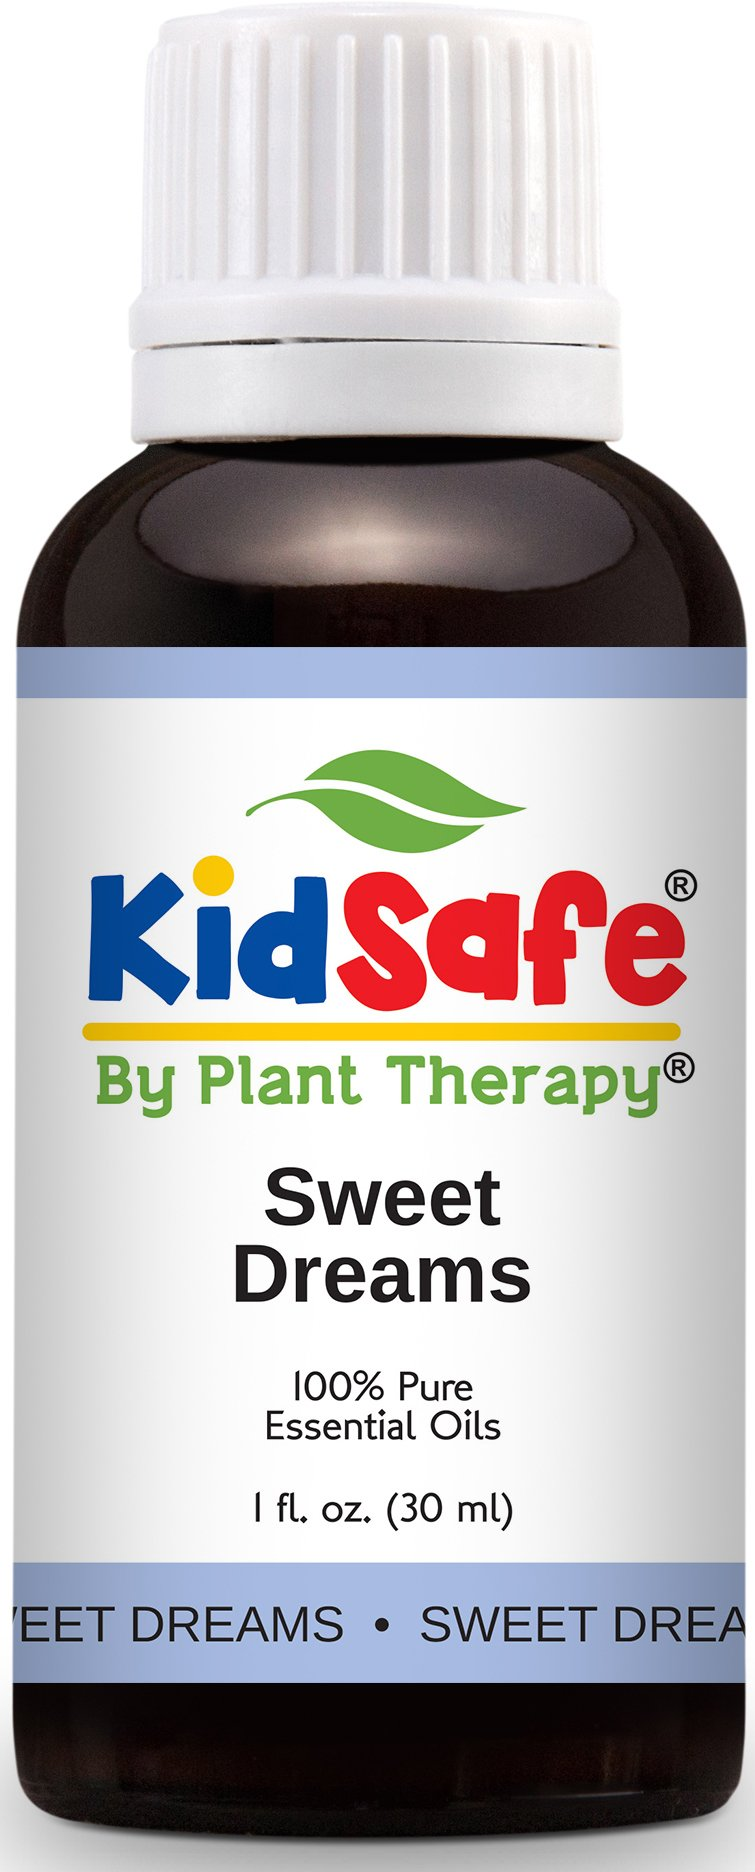 Plant Therapy KidSafe Sweet Dreams Synergy Essential Oil 30 mL (1 oz) 100% Pure, Undilated, Therapeutic Grade